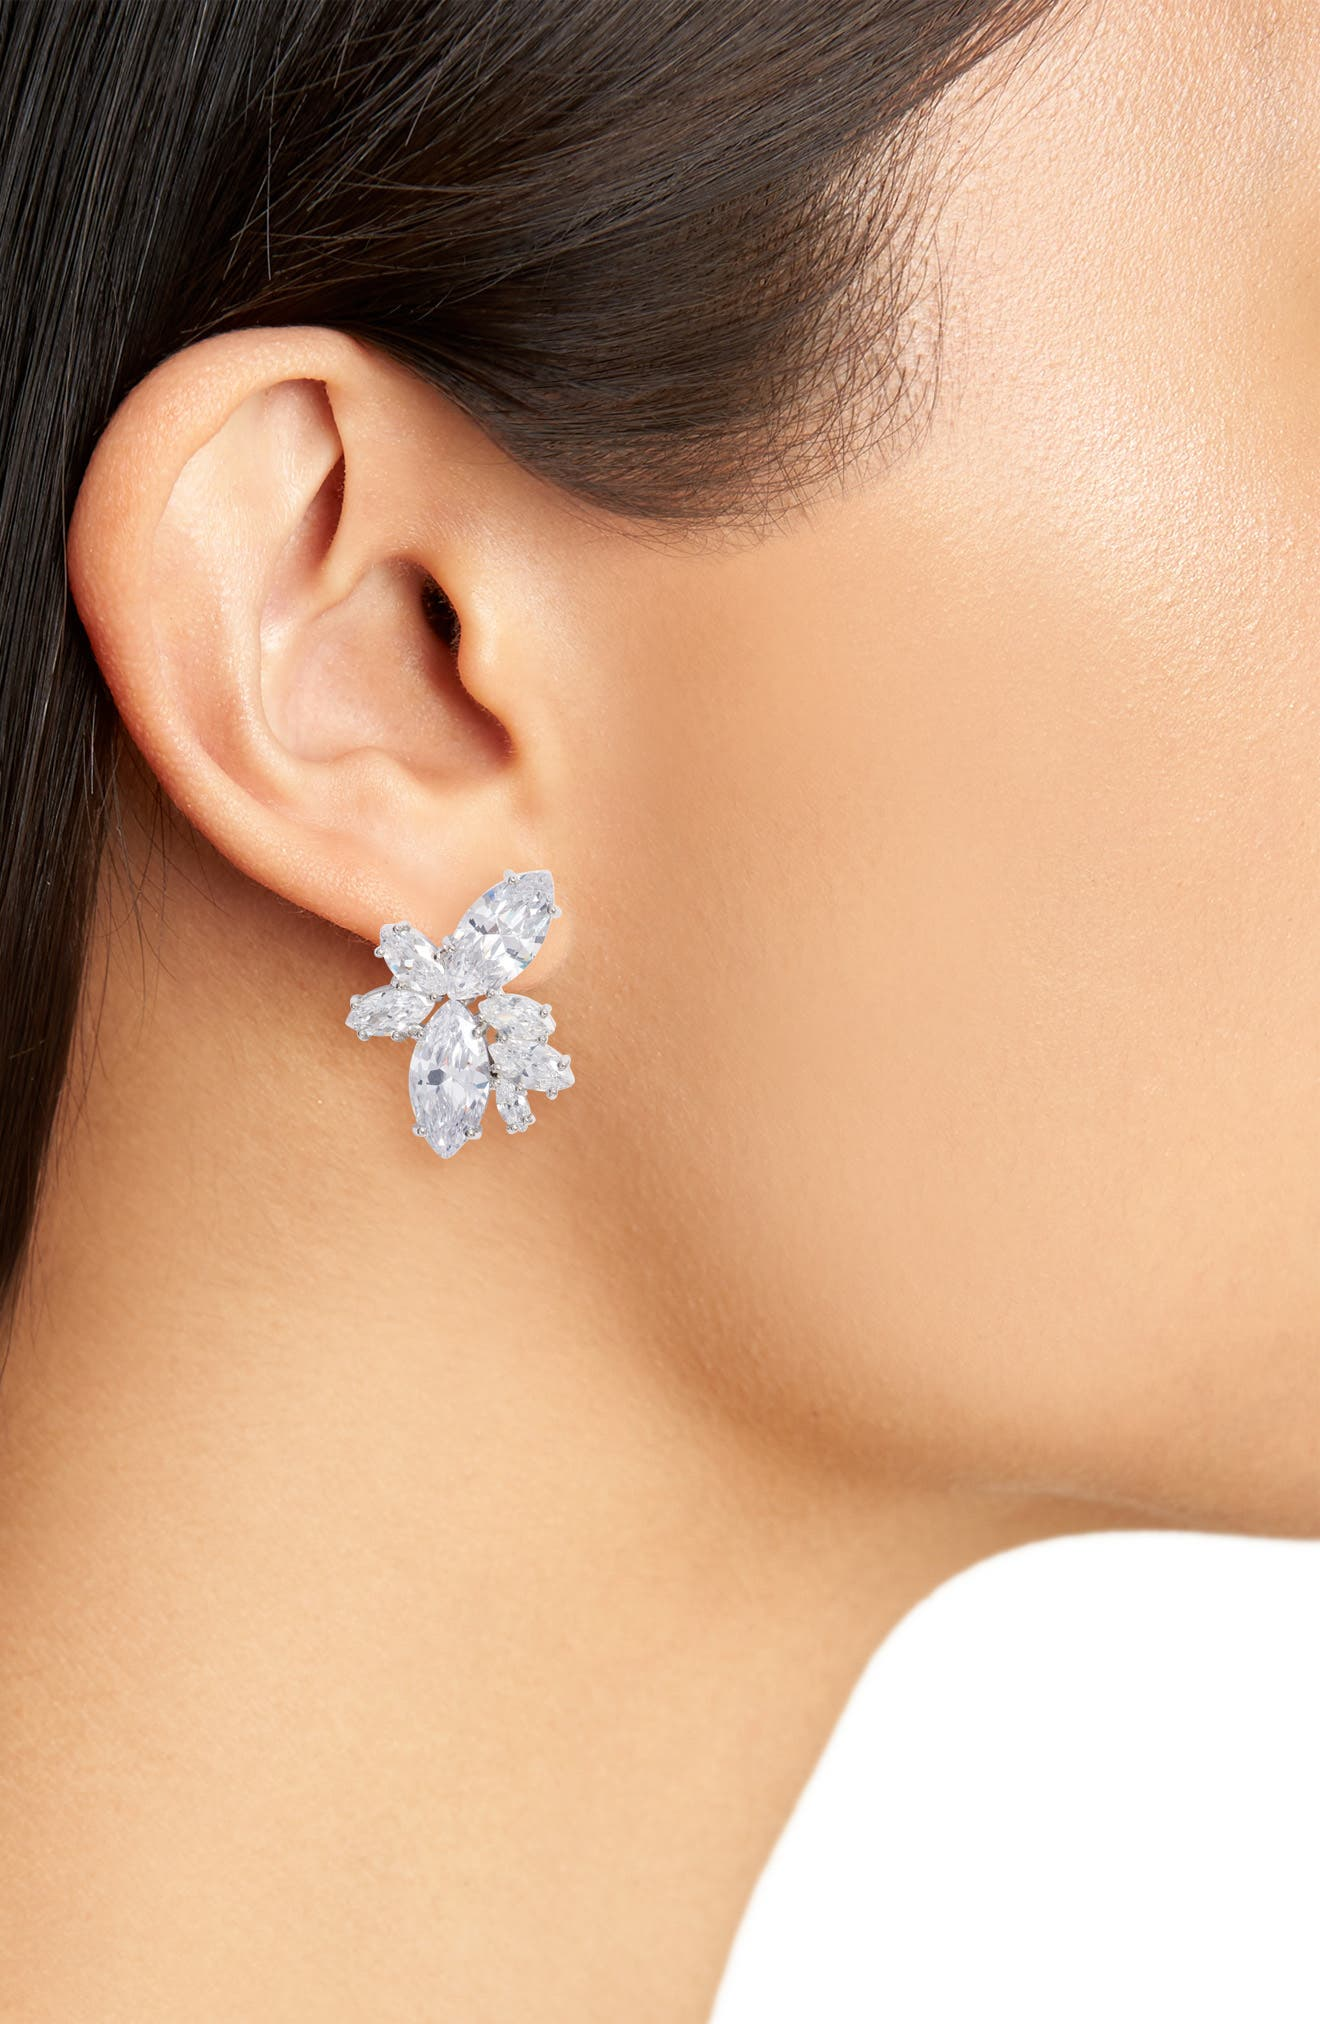 Floral Stone Cluster Stud Earrings,                             Alternate thumbnail 2, color,                             Silver/ White Cz